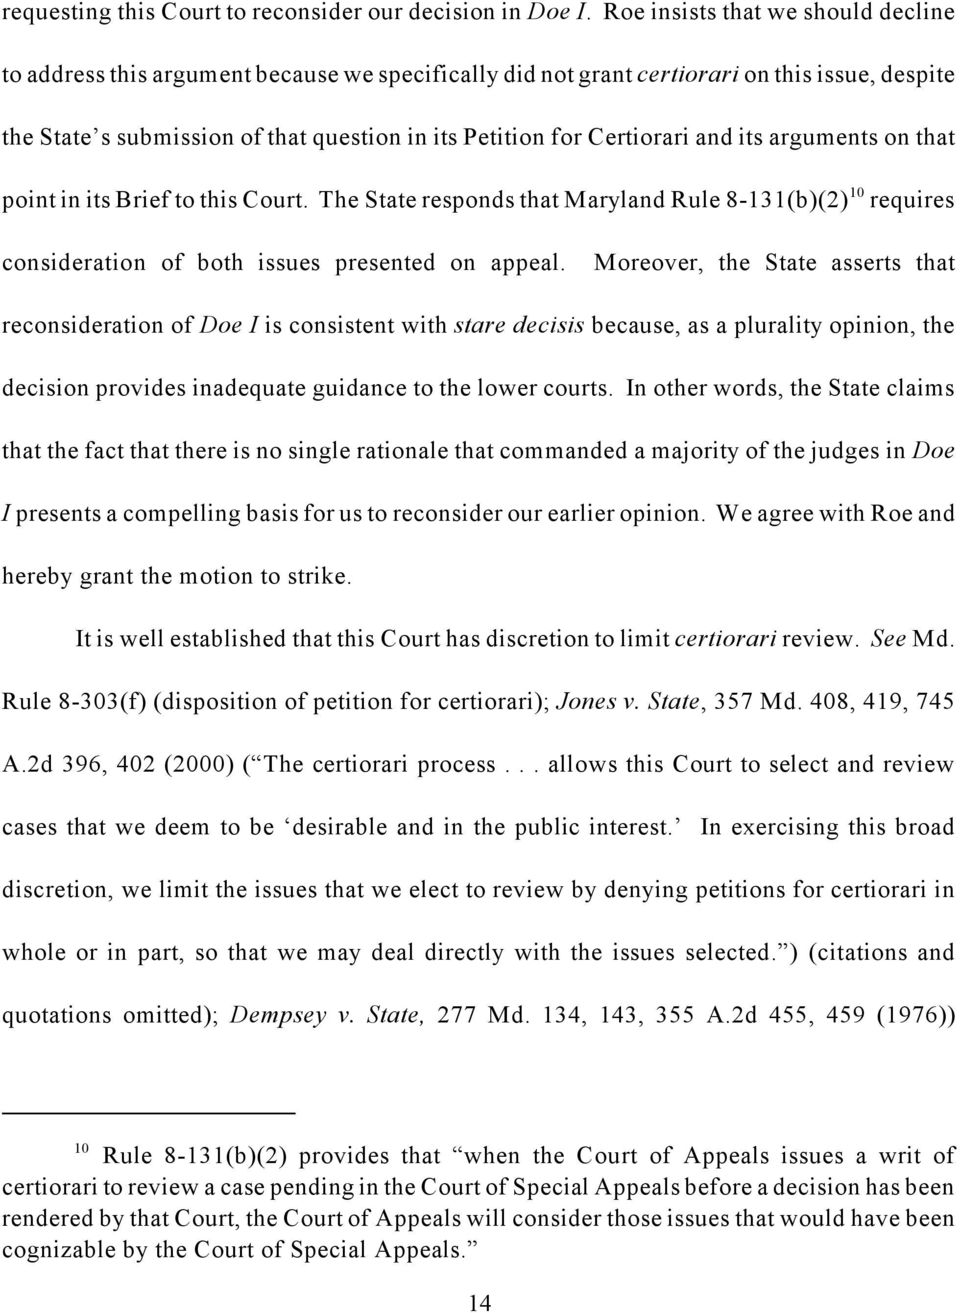 Certiorari and its arguments on that 10 point in its Brief to this Court. The State responds that Maryland Rule 8-131(b)(2) requires consideration of both issues presented on appeal.